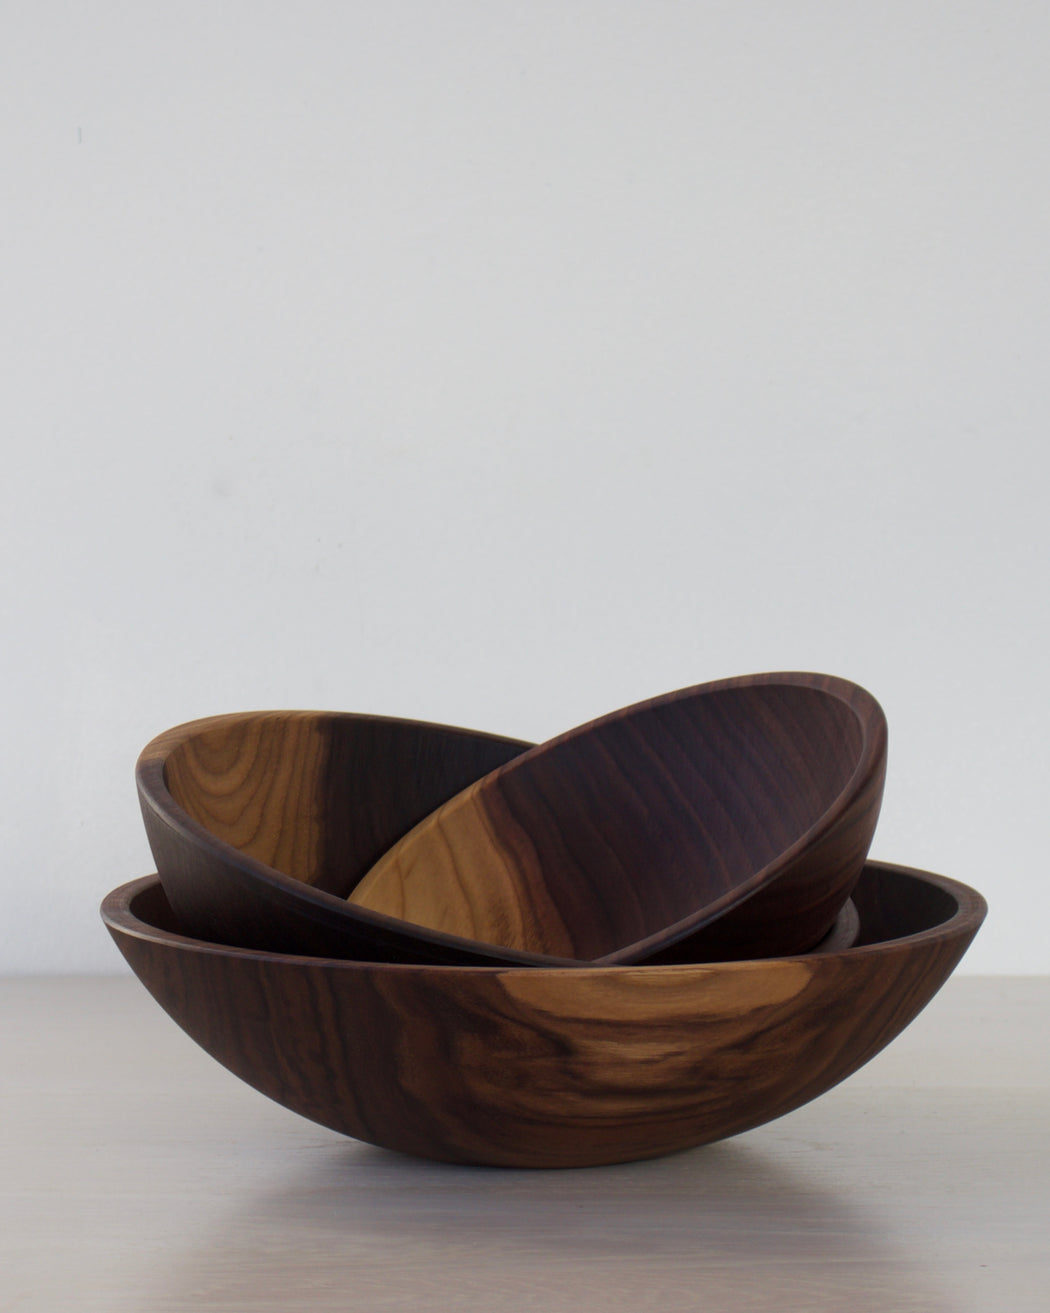 Set of 3 Nesting Bowls - Black Walnut